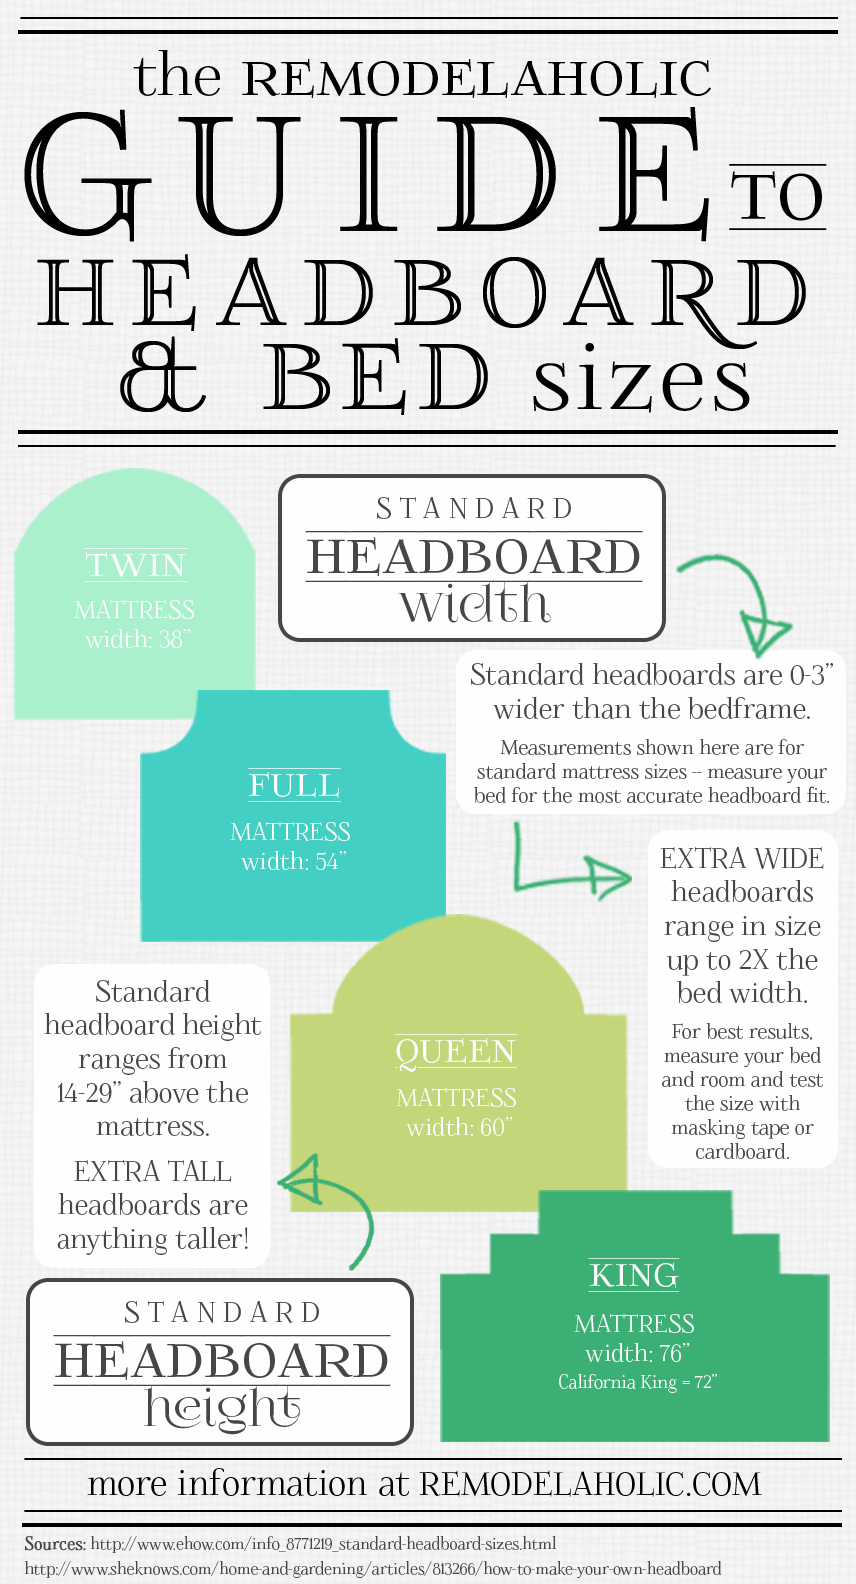 Your Guide To Headboard Sizes Infographic Via Remodelaholic Com Headboardweek Diy